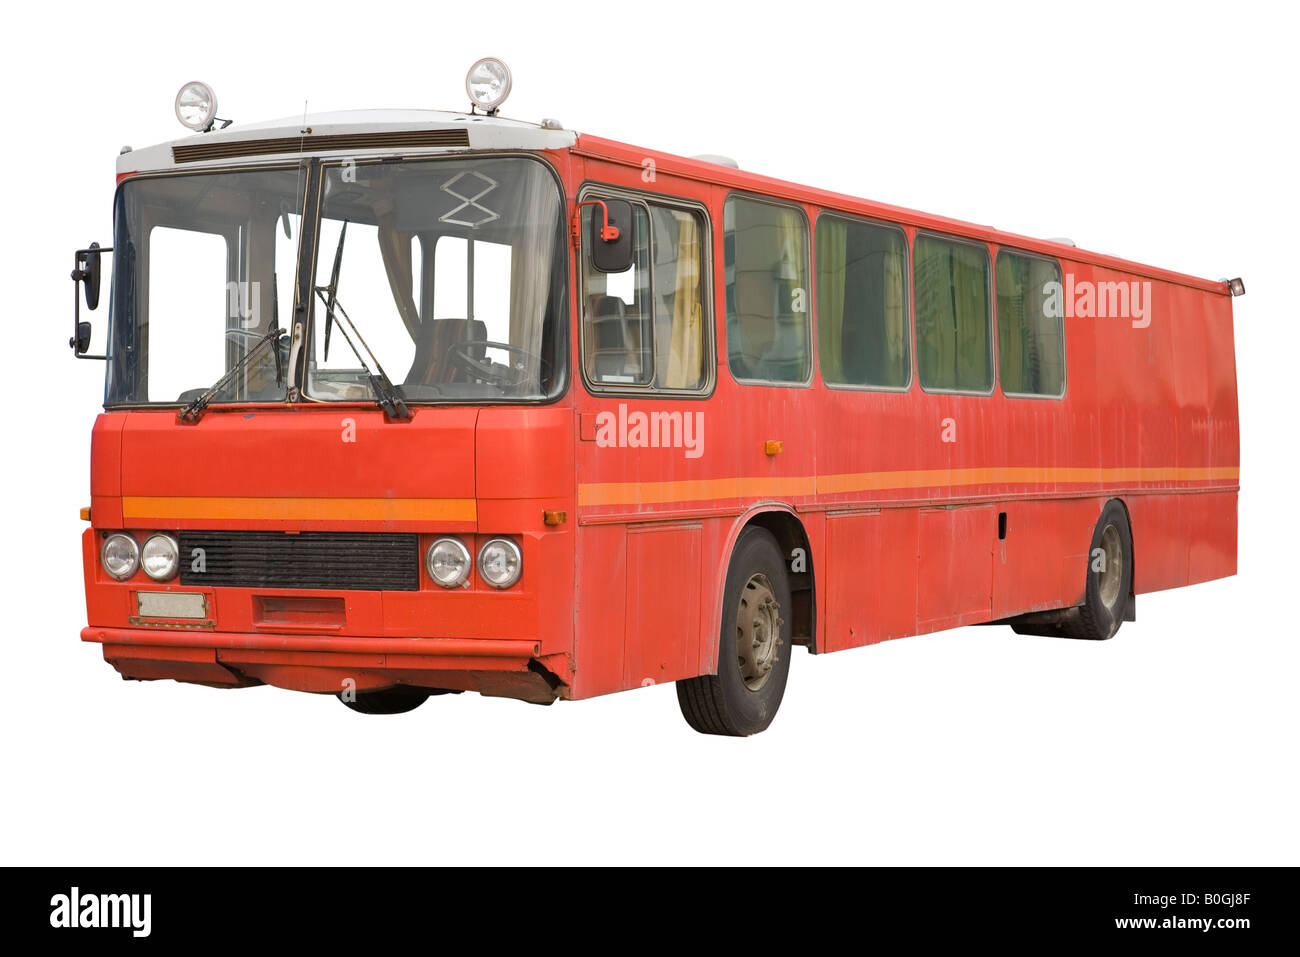 Old red bus over white - Stock Image